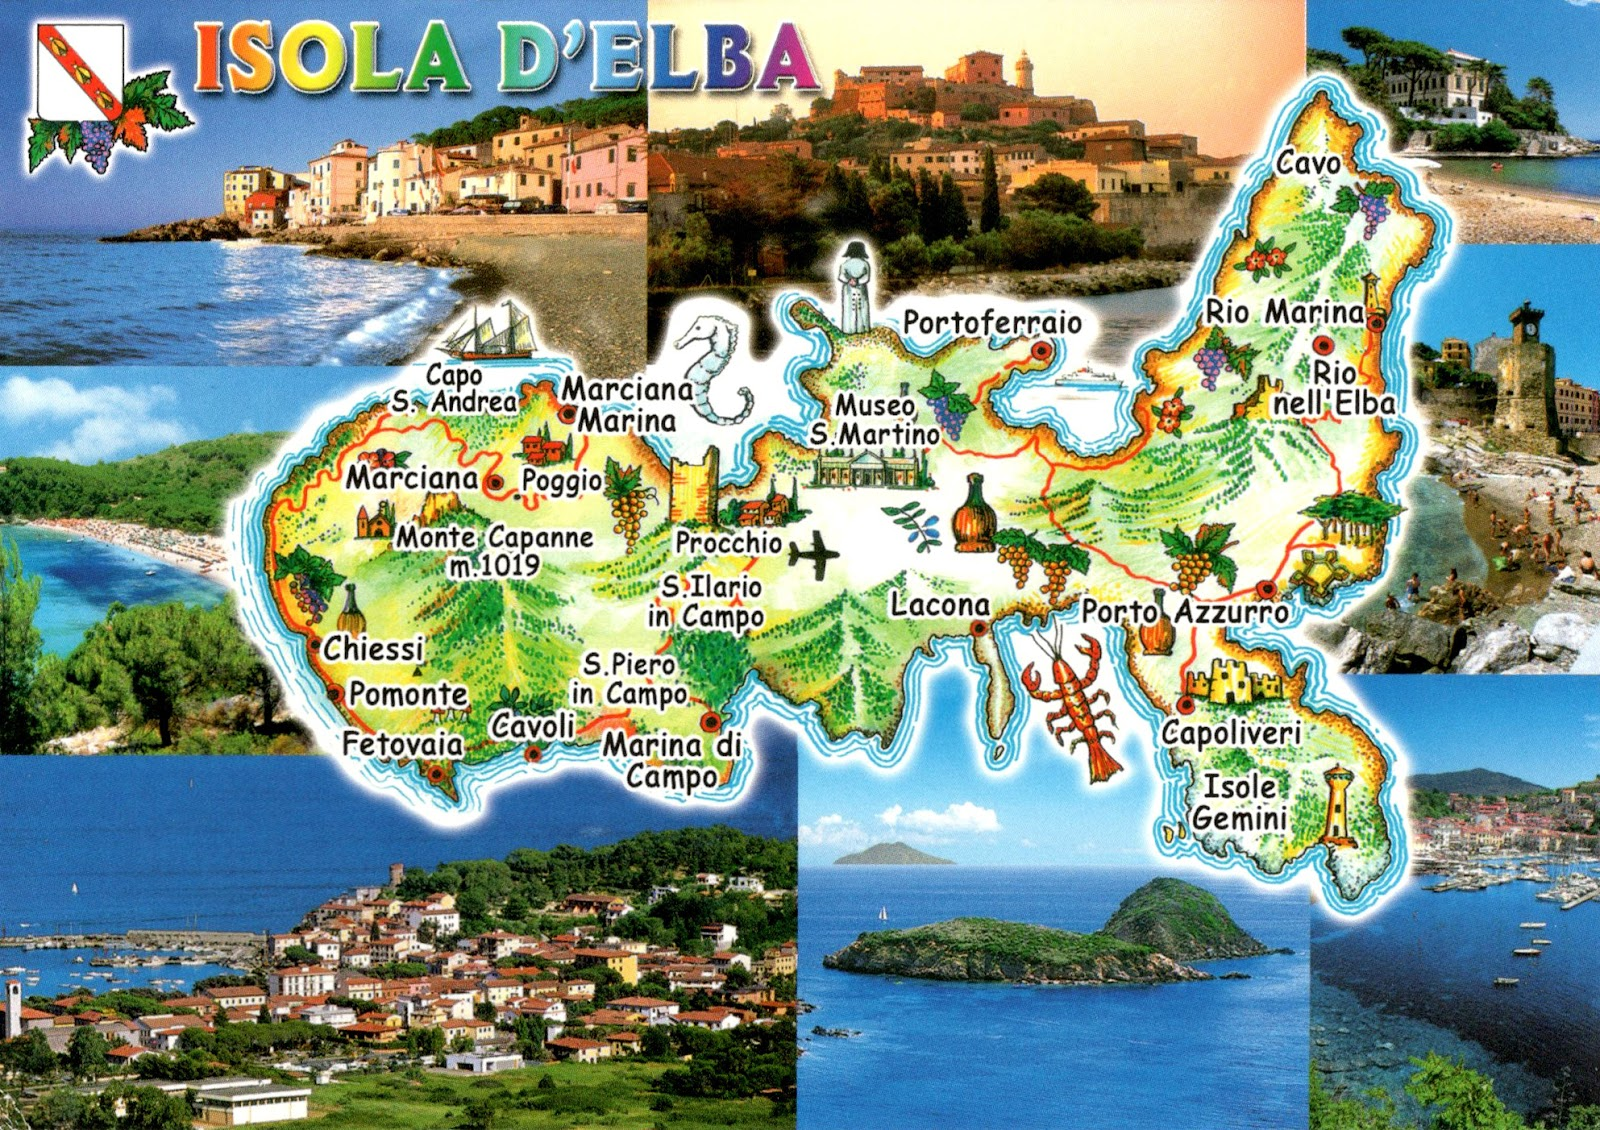 WORLD COME TO MY HOME 2141 ITALY Tuscany The map of Elba